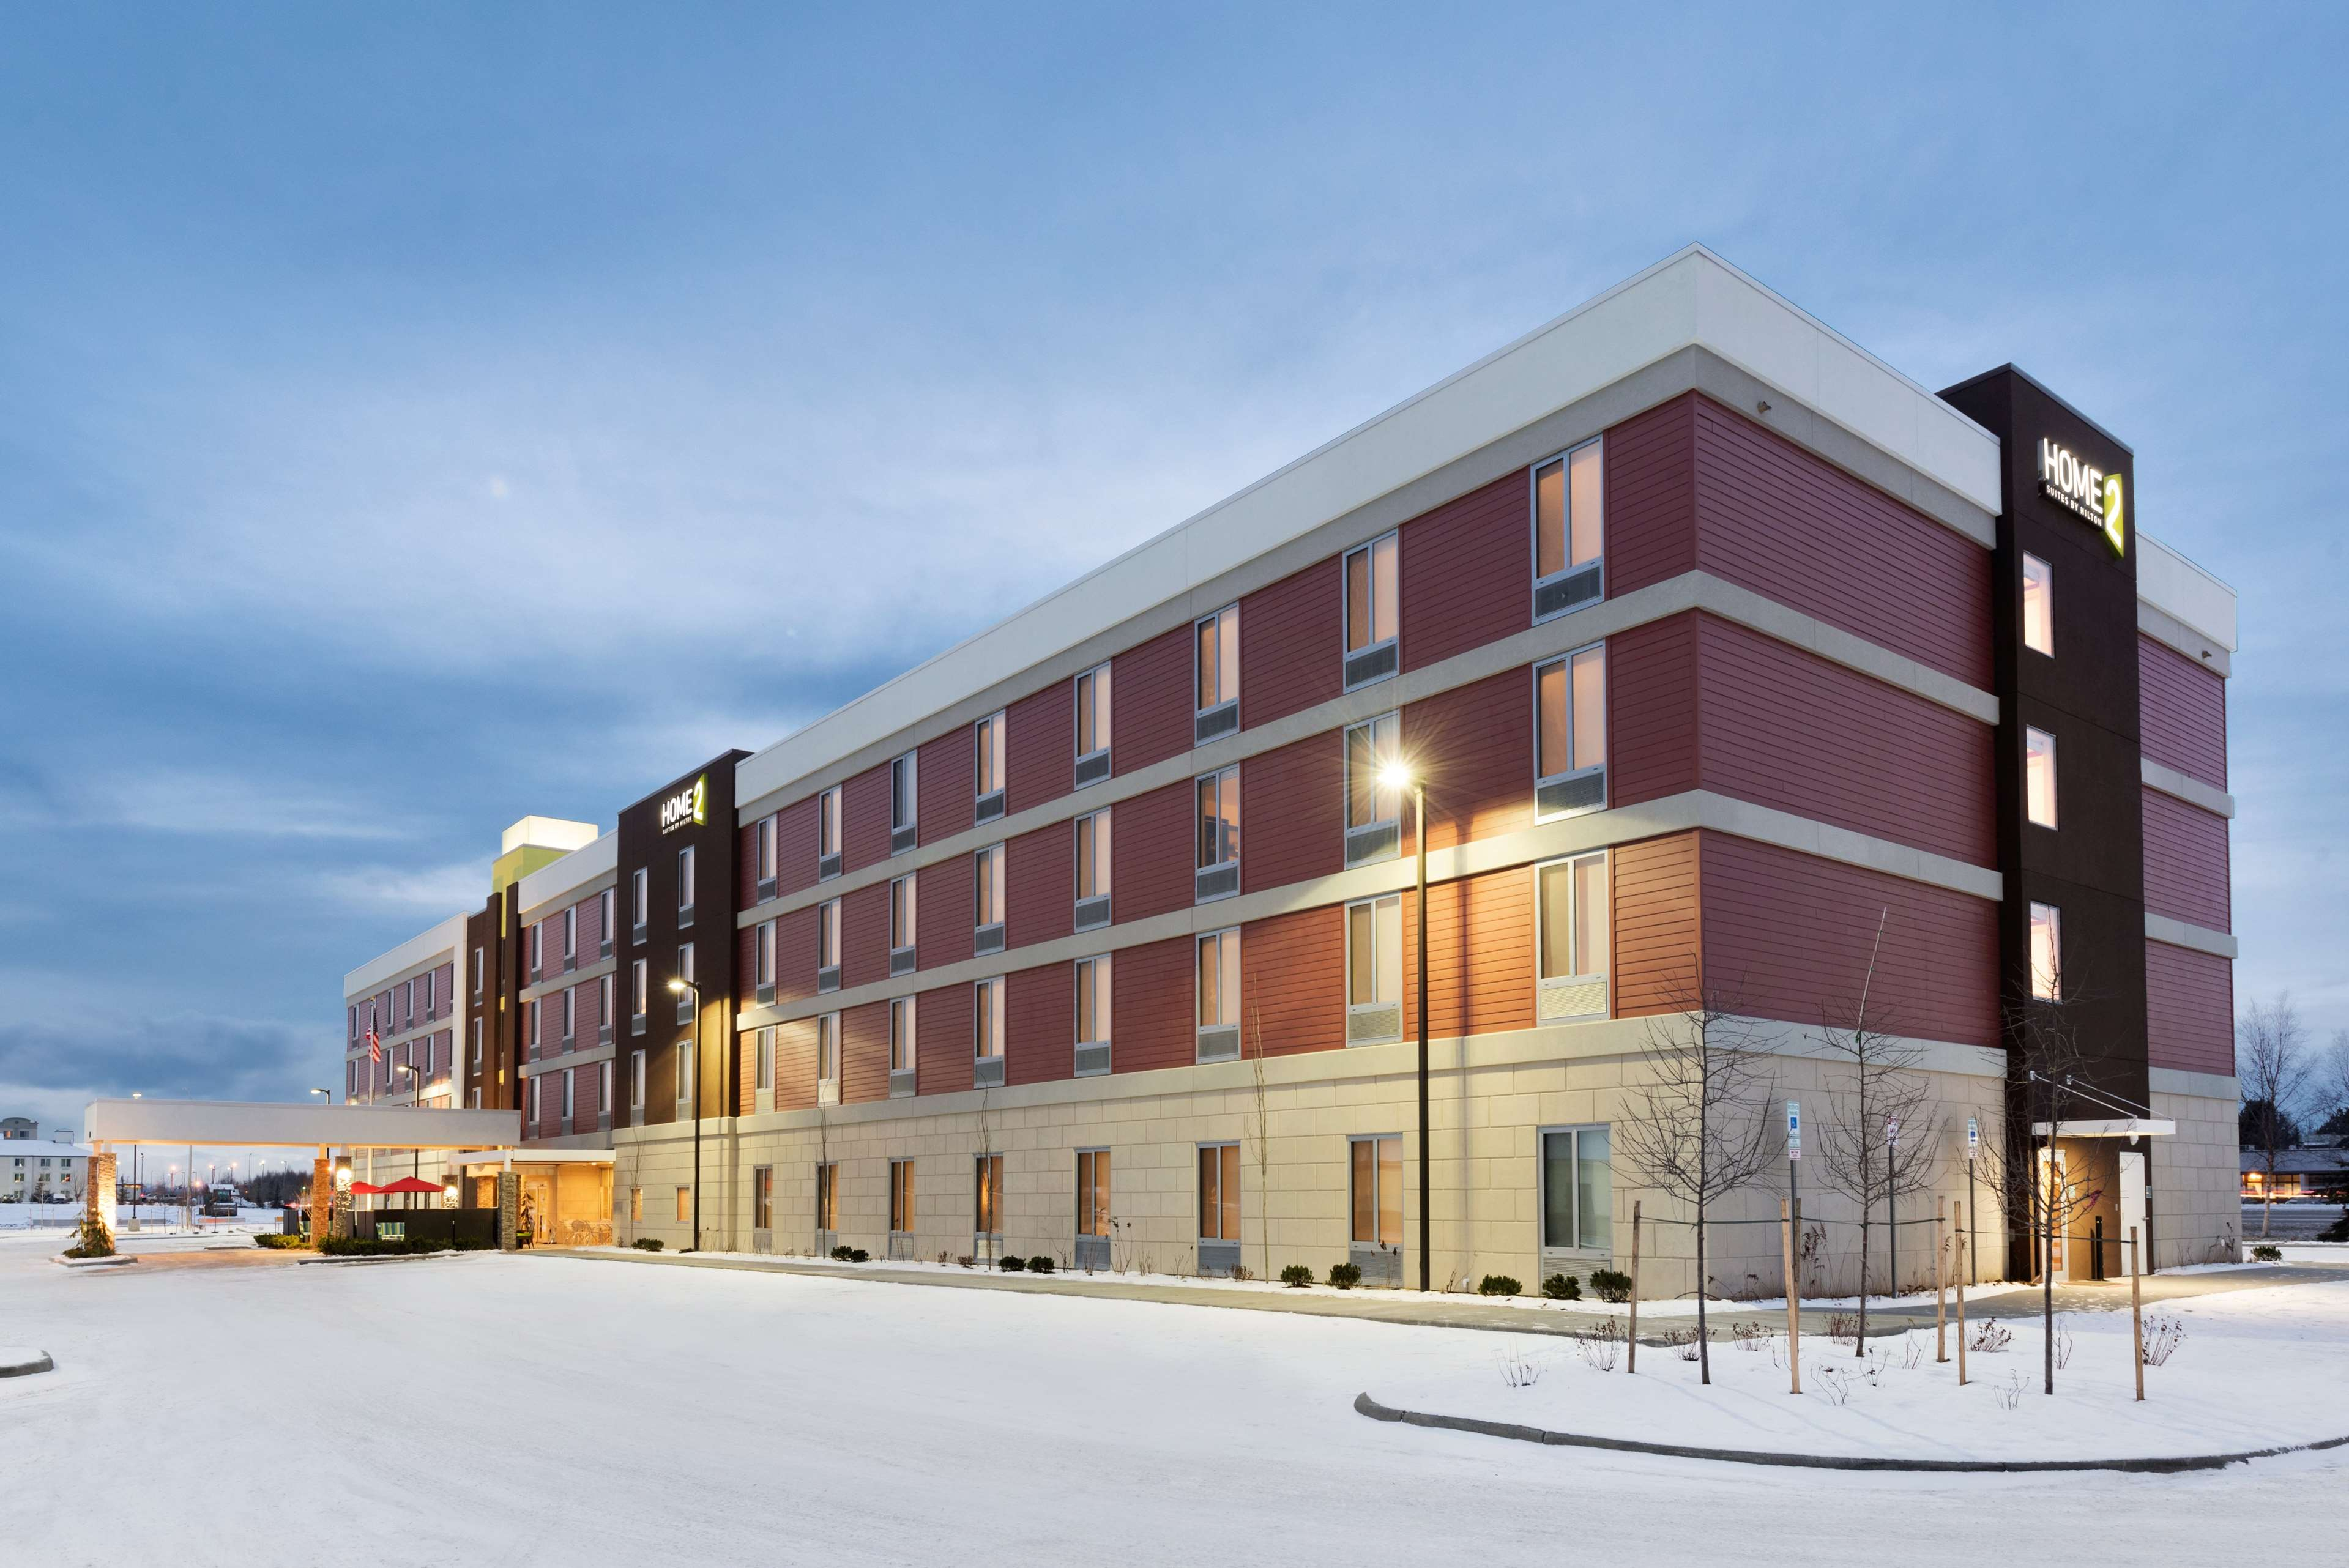 Home2 Suites by Hilton Anchorage/Midtown image 3